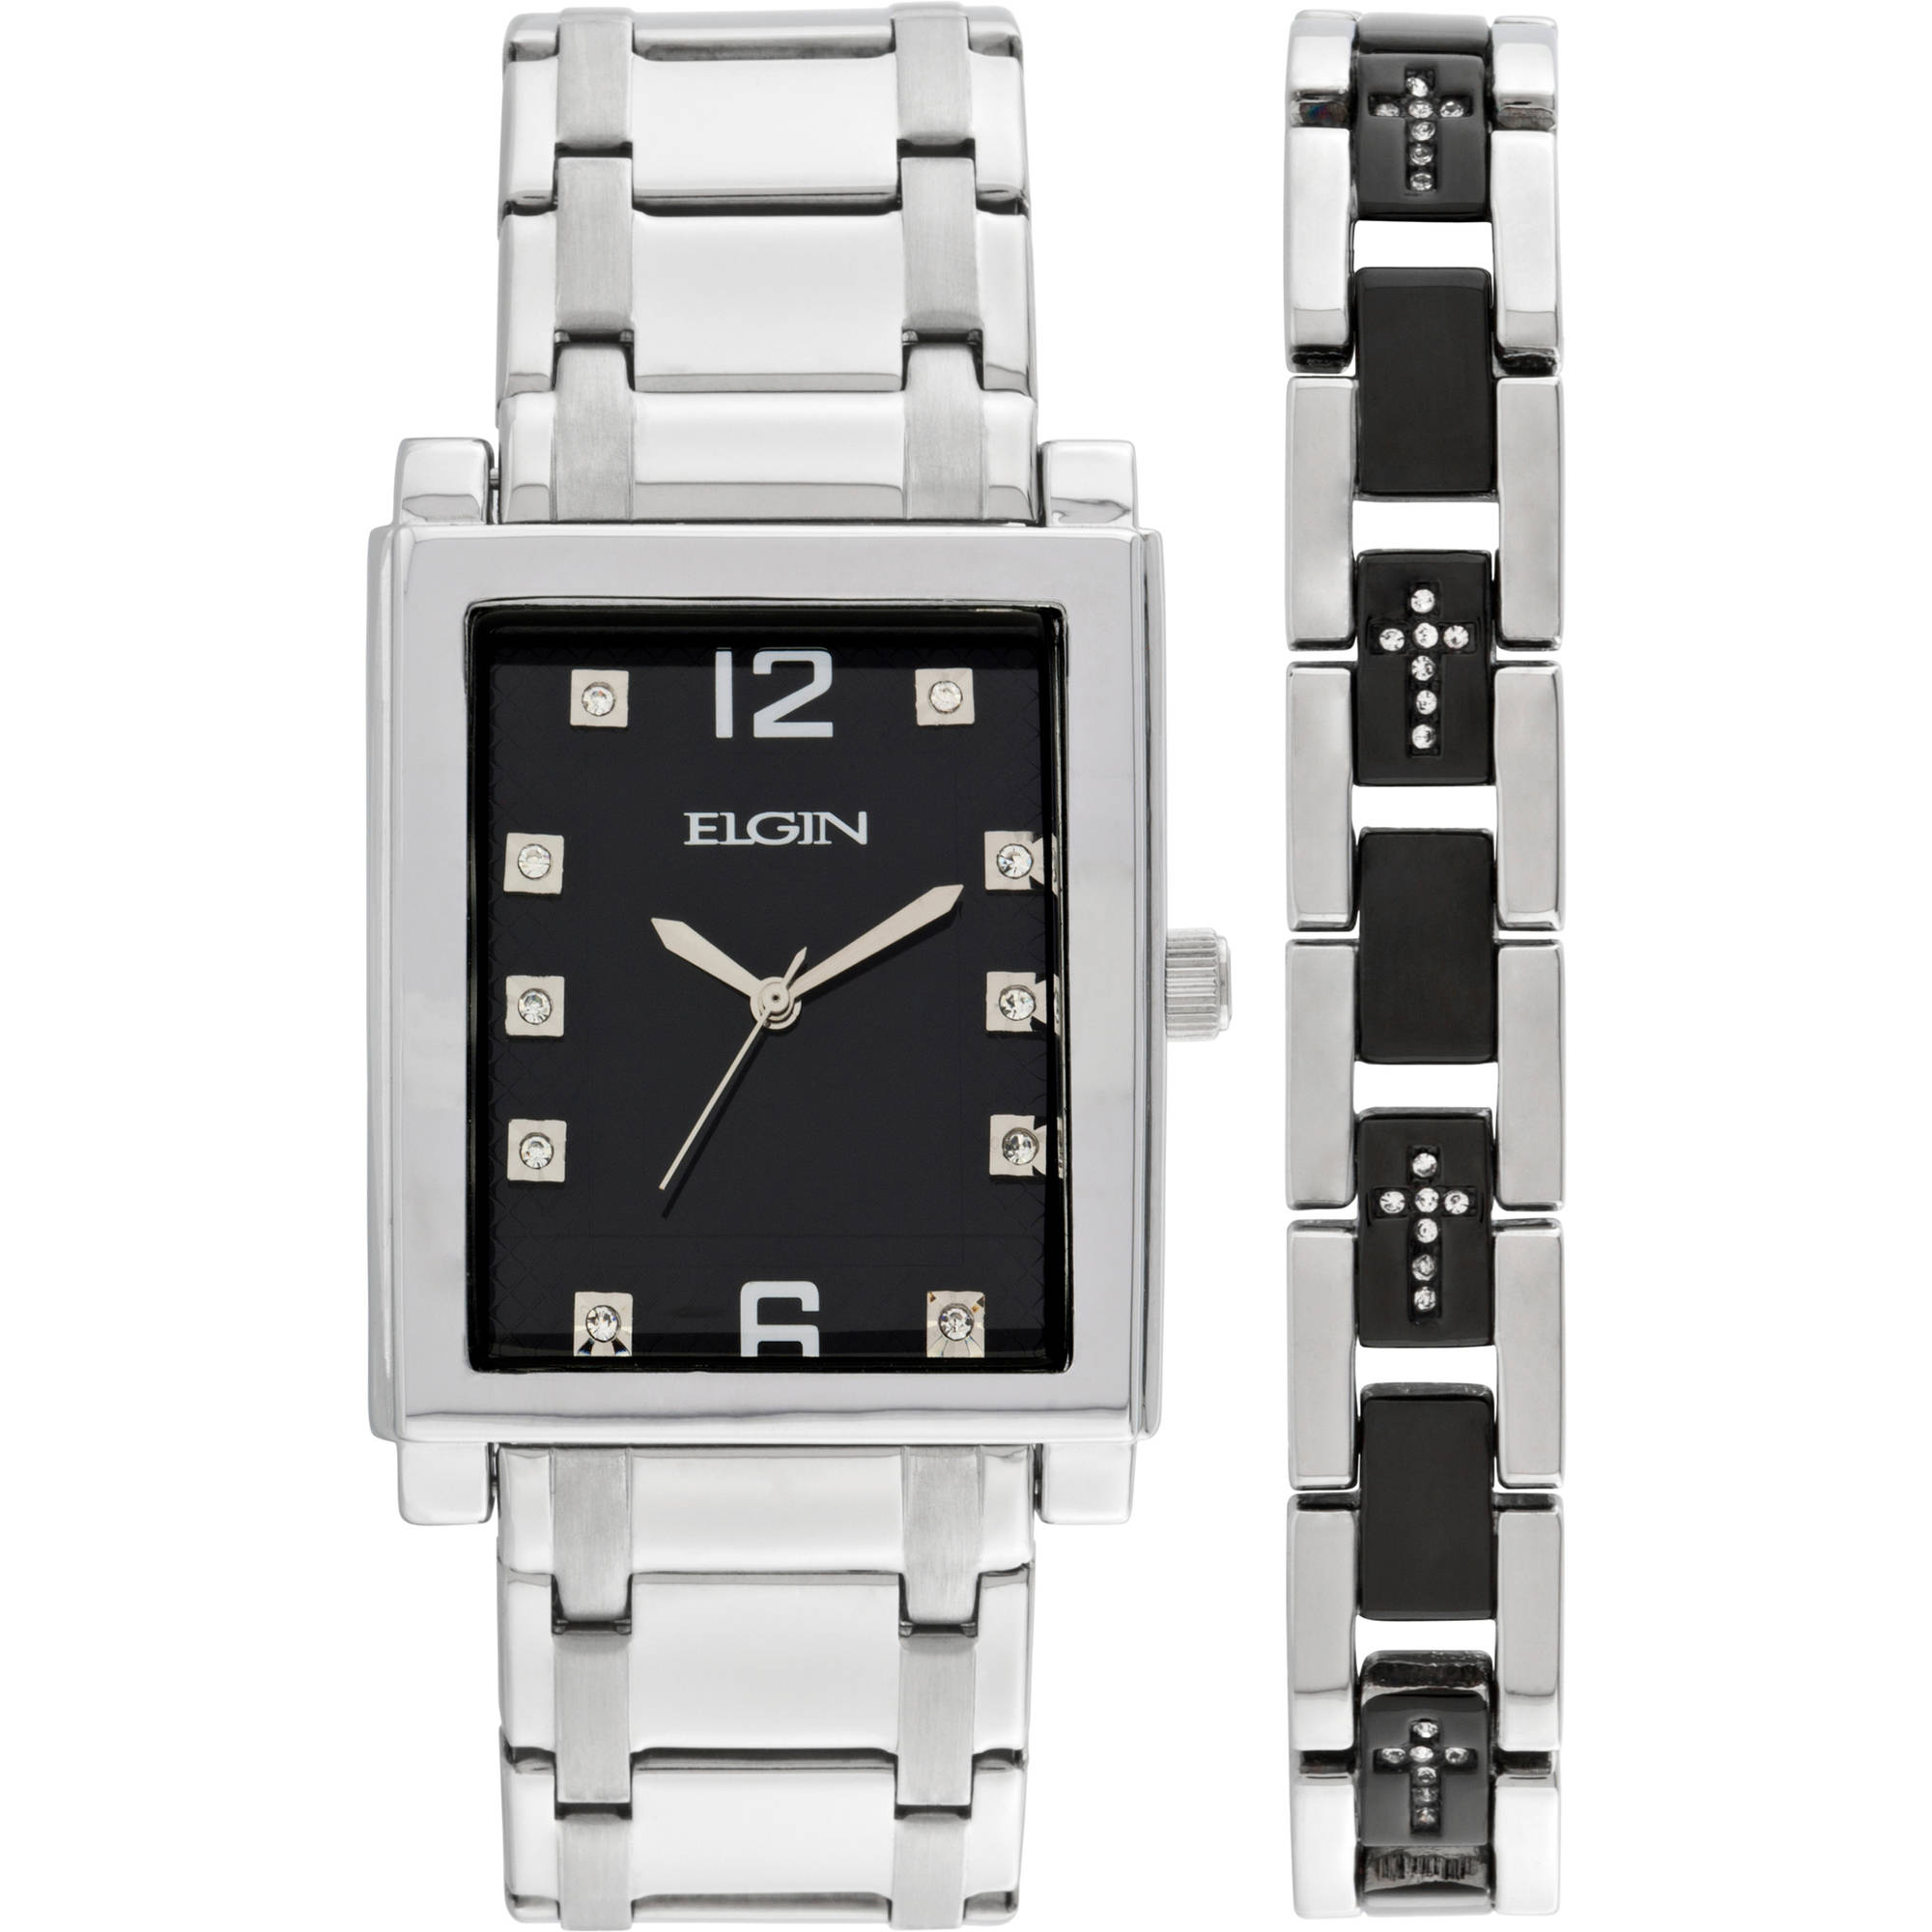 Elgin Men's Crystal Accent Silver-Tone and Black Watch and Cross Bracelet Set